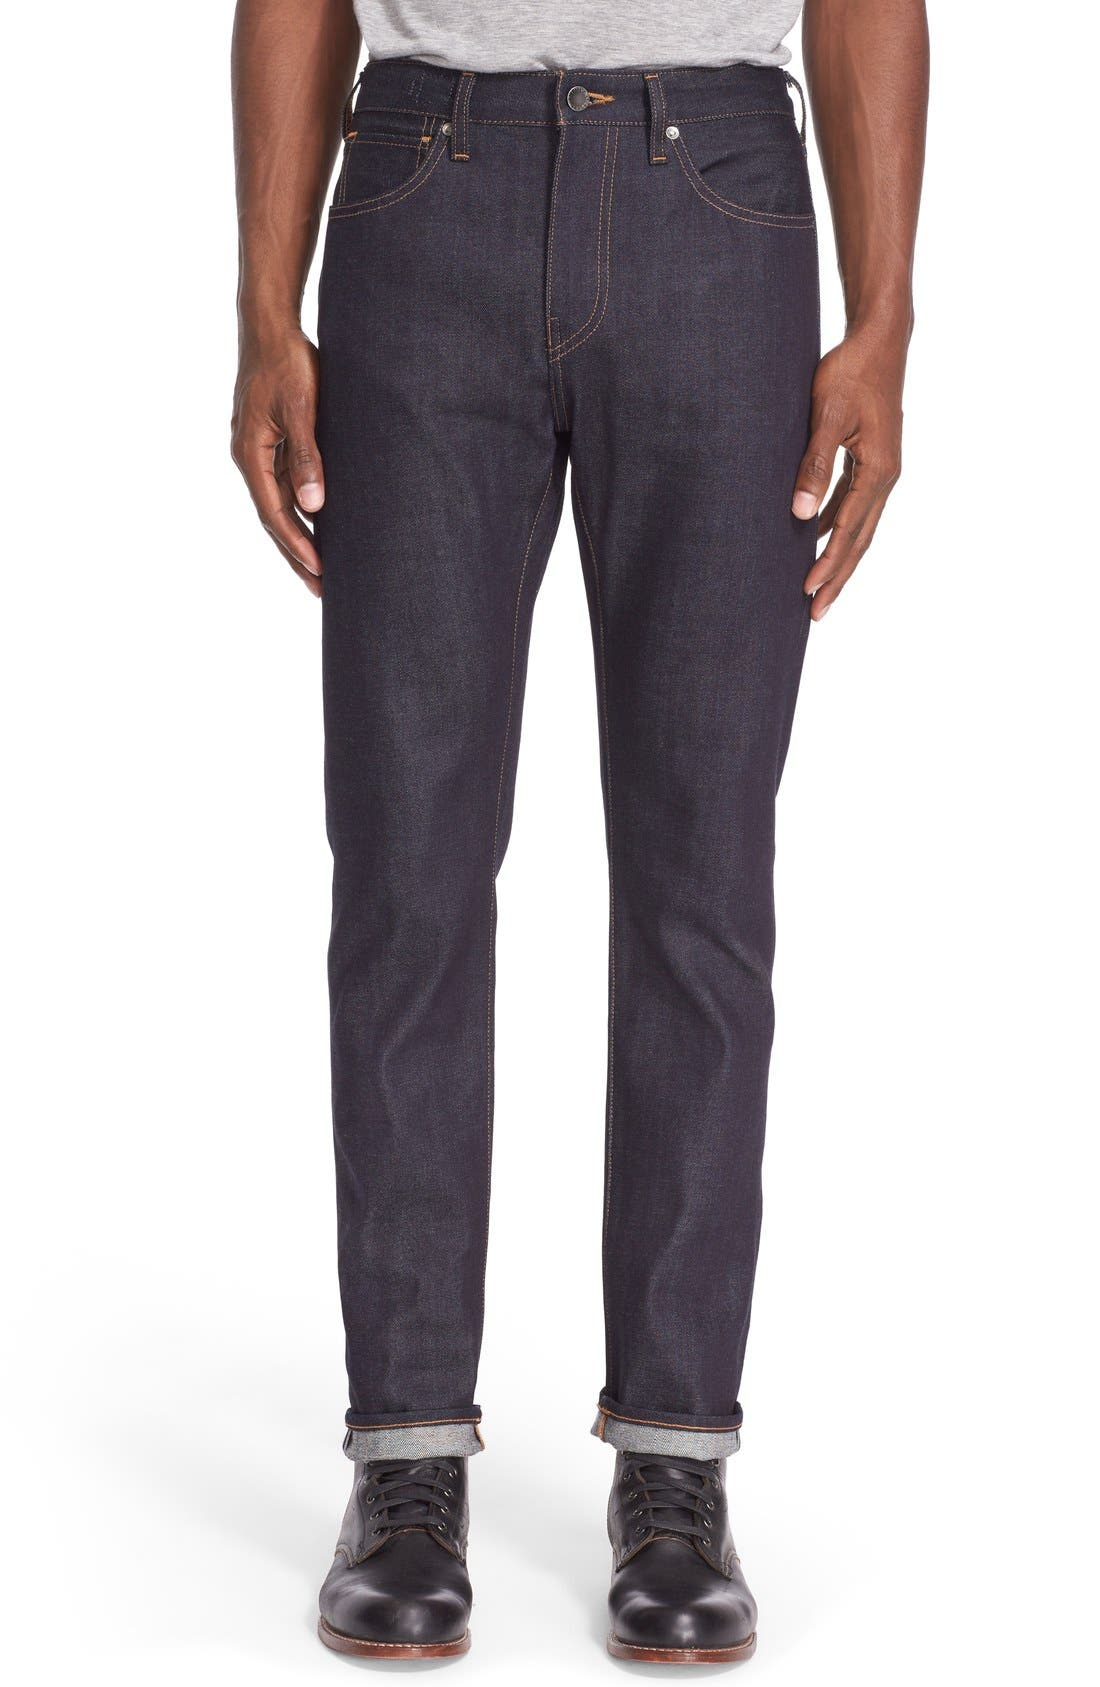 'Tack' Slim Fit Jeans,                         Main,                         color, Indigo